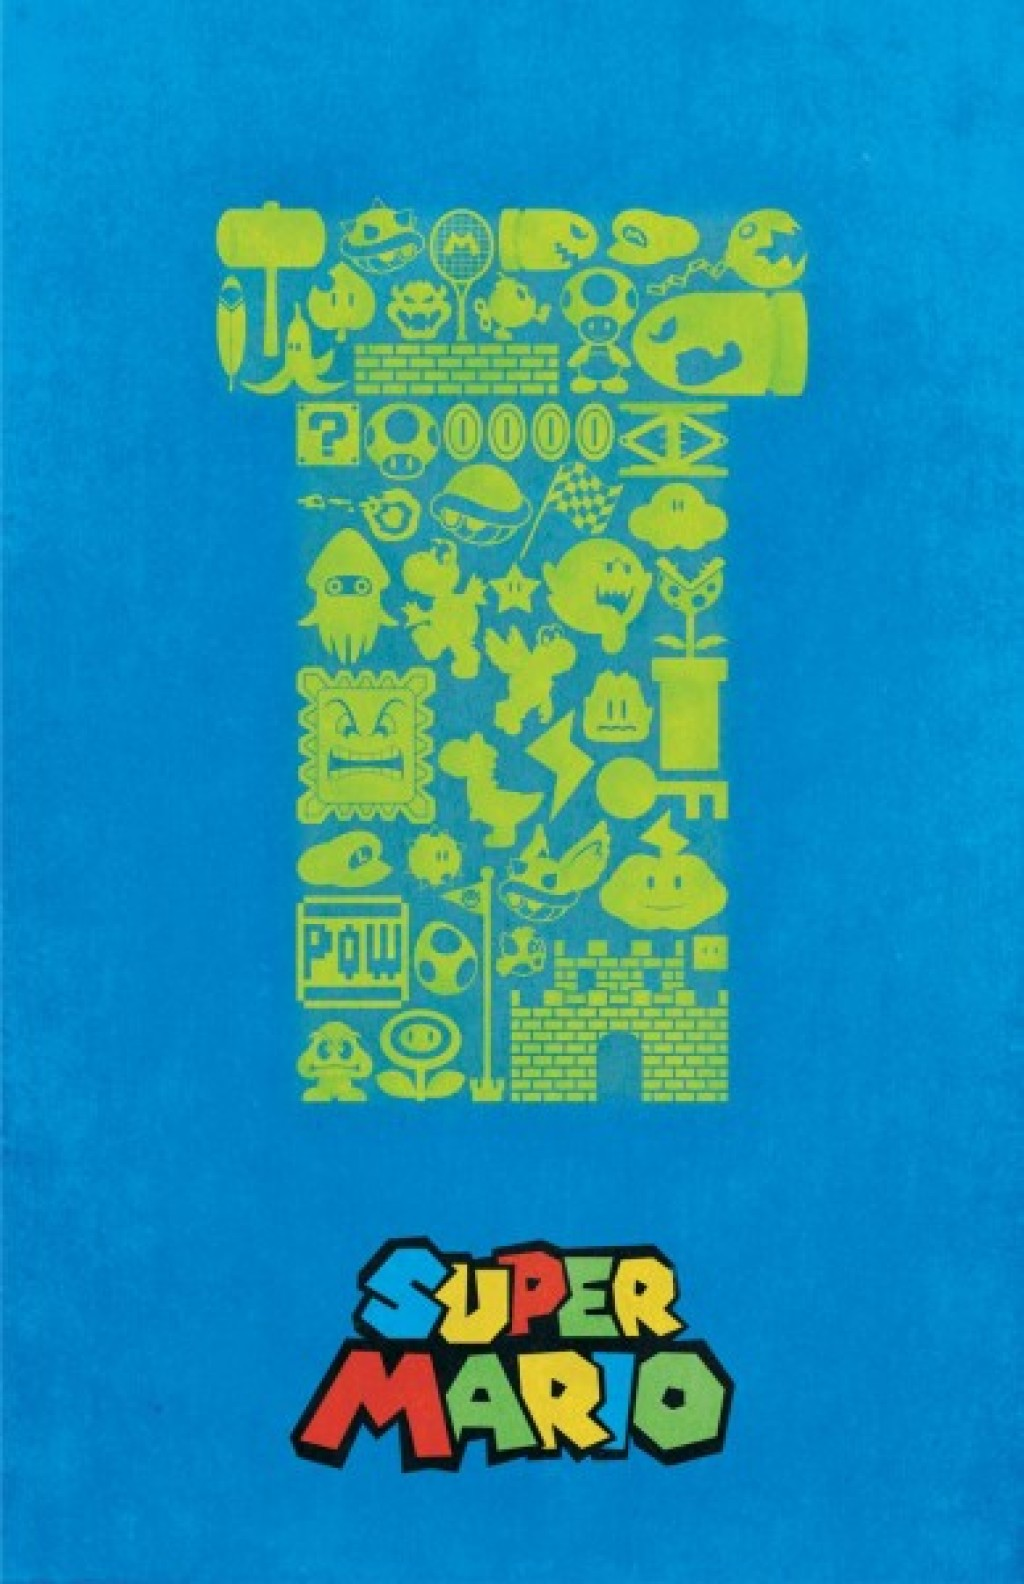 super-mario-video-game-poster-by-dylan-west